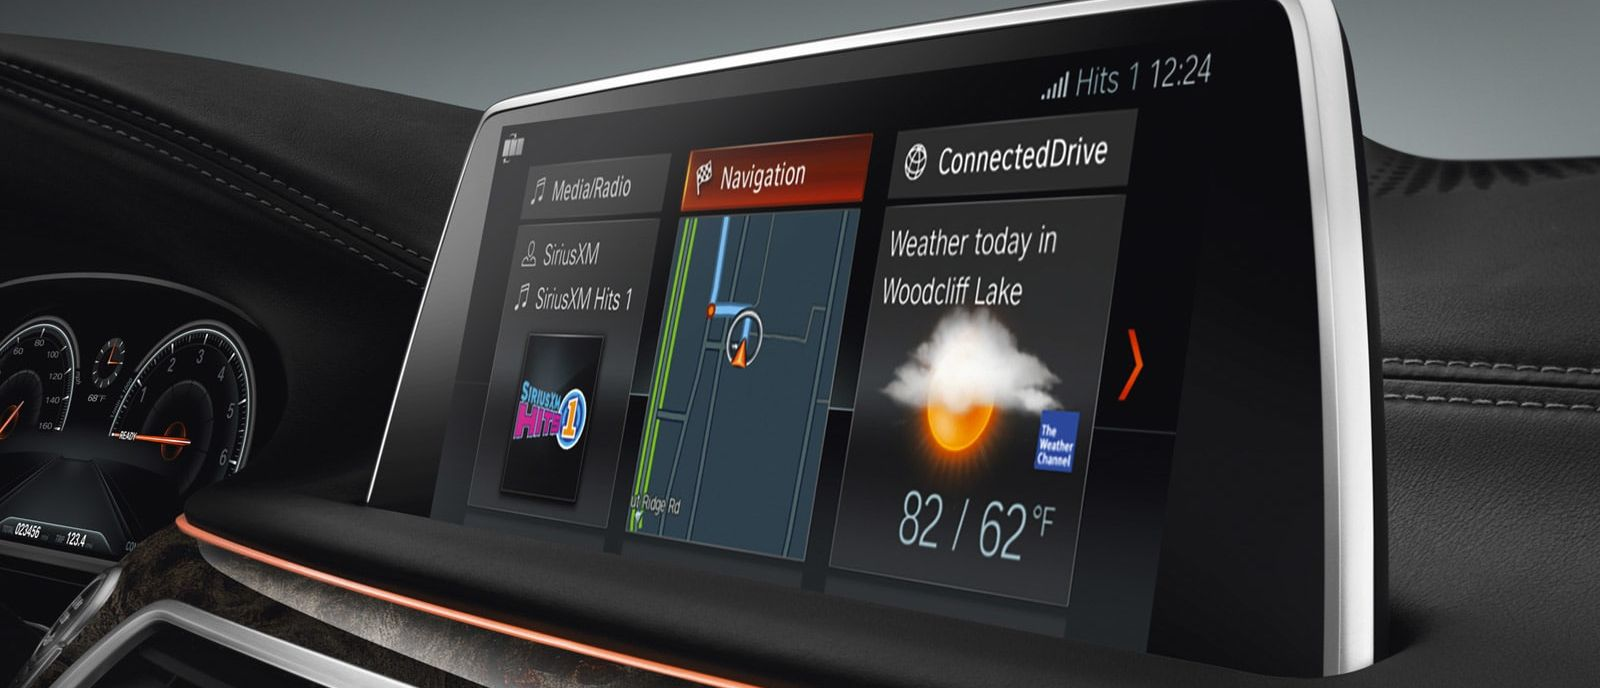 Intelligent Technology in the BMW 7 Series